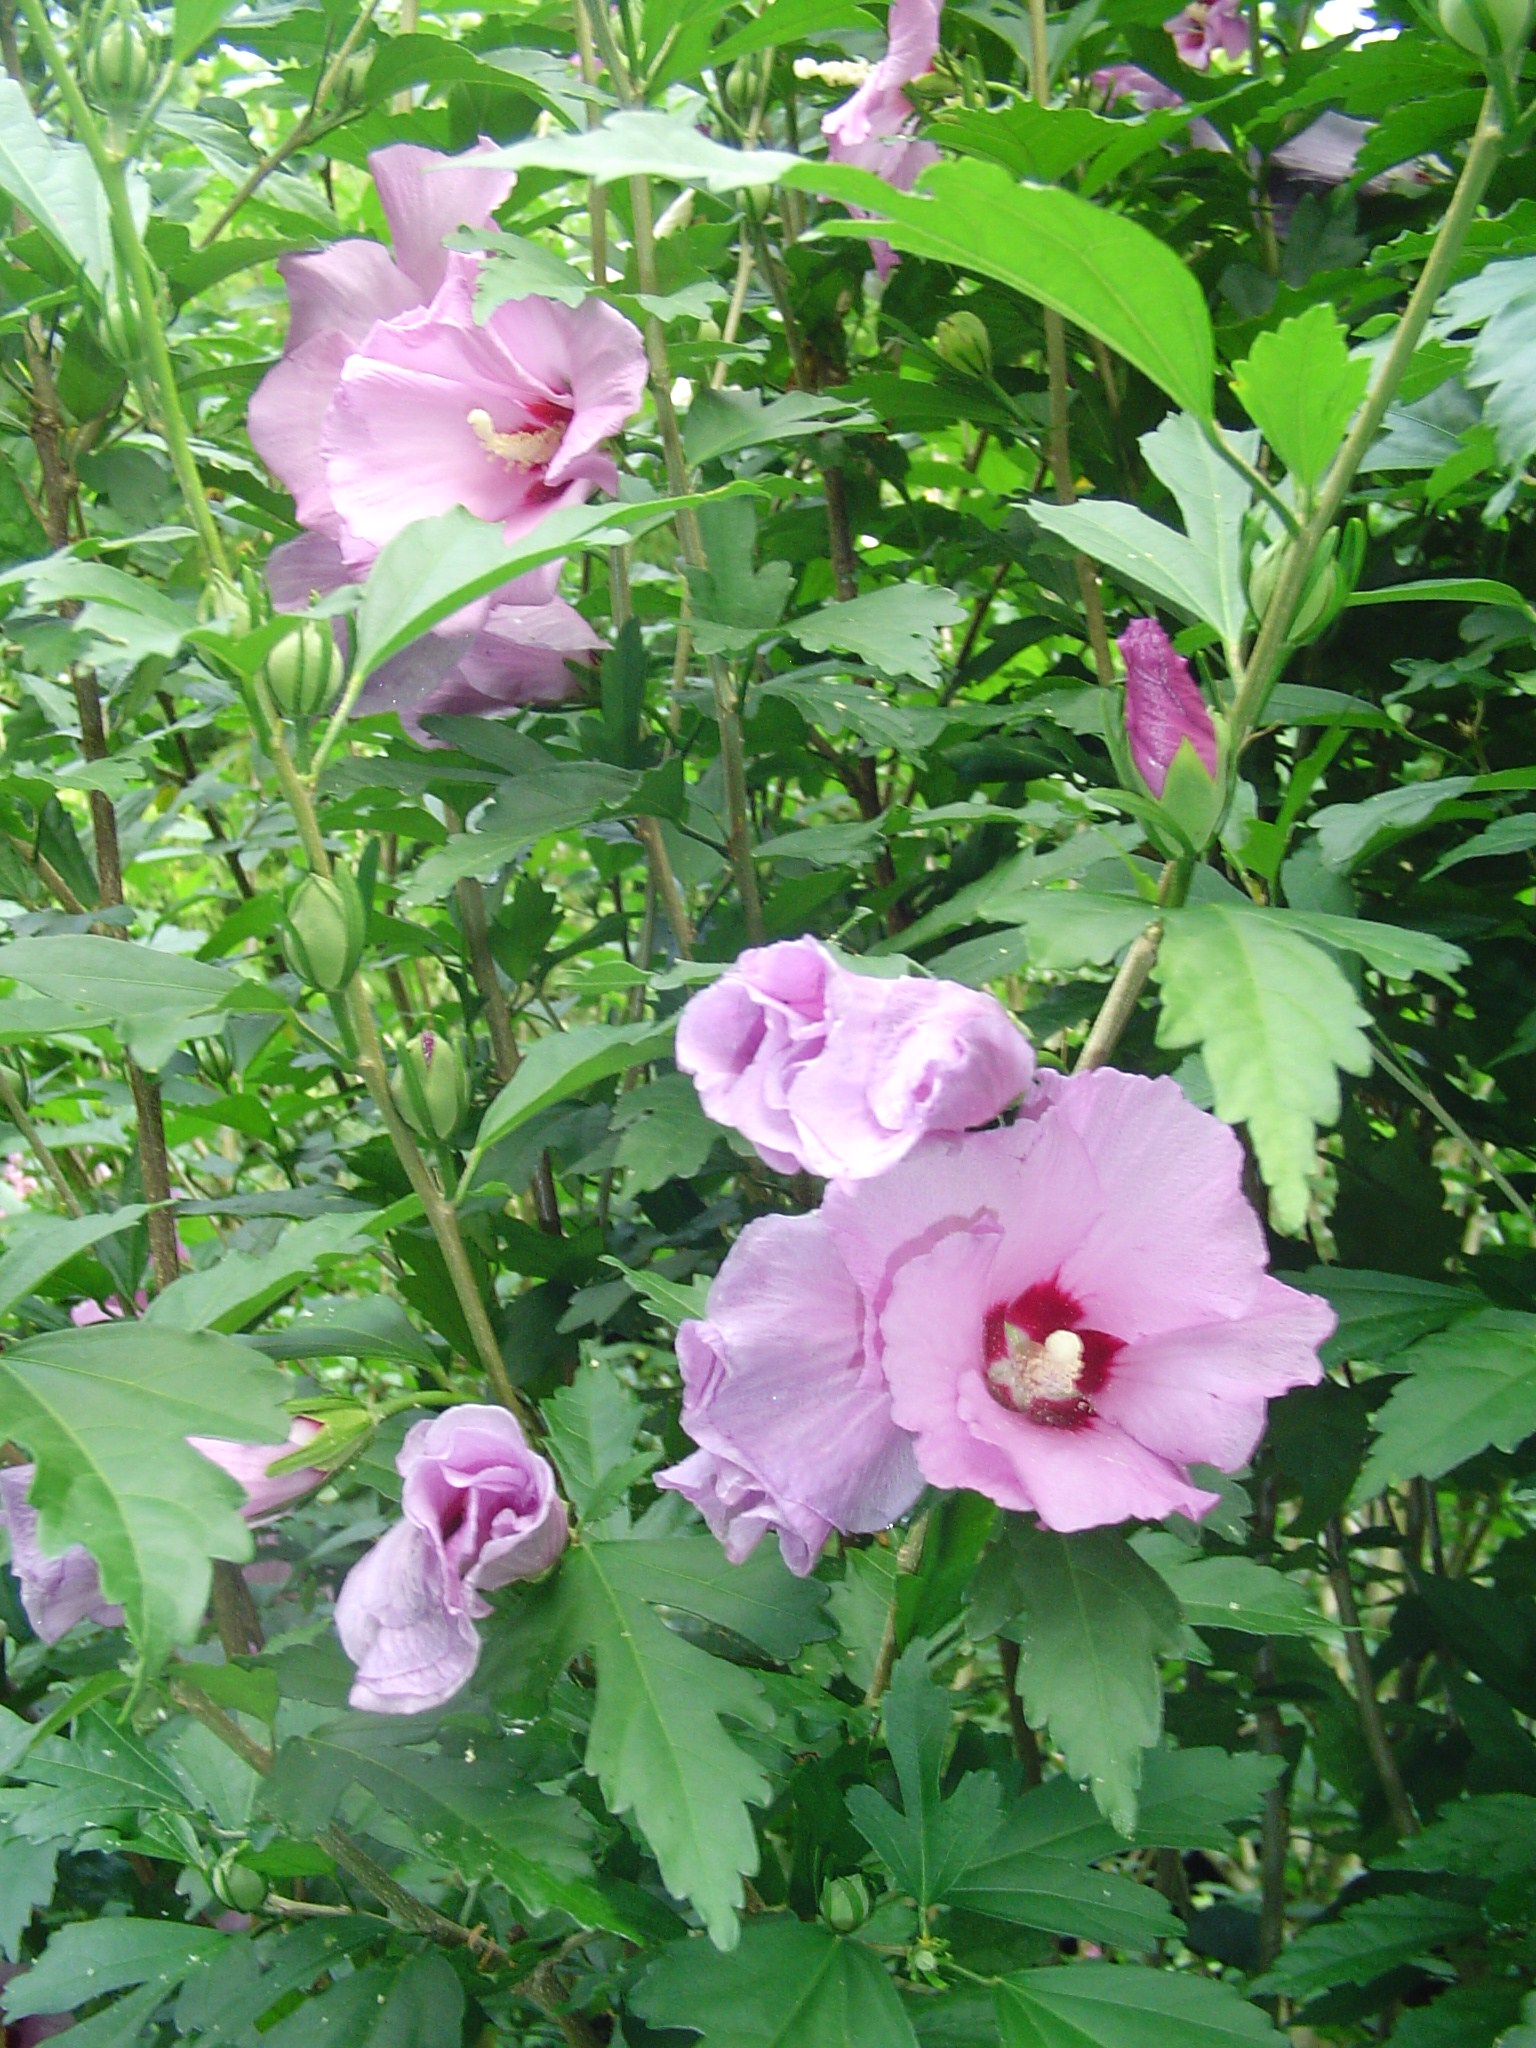 HIbiscus syriacus or Rose of Sharon & Hardy Hibiscus | Forest Garden